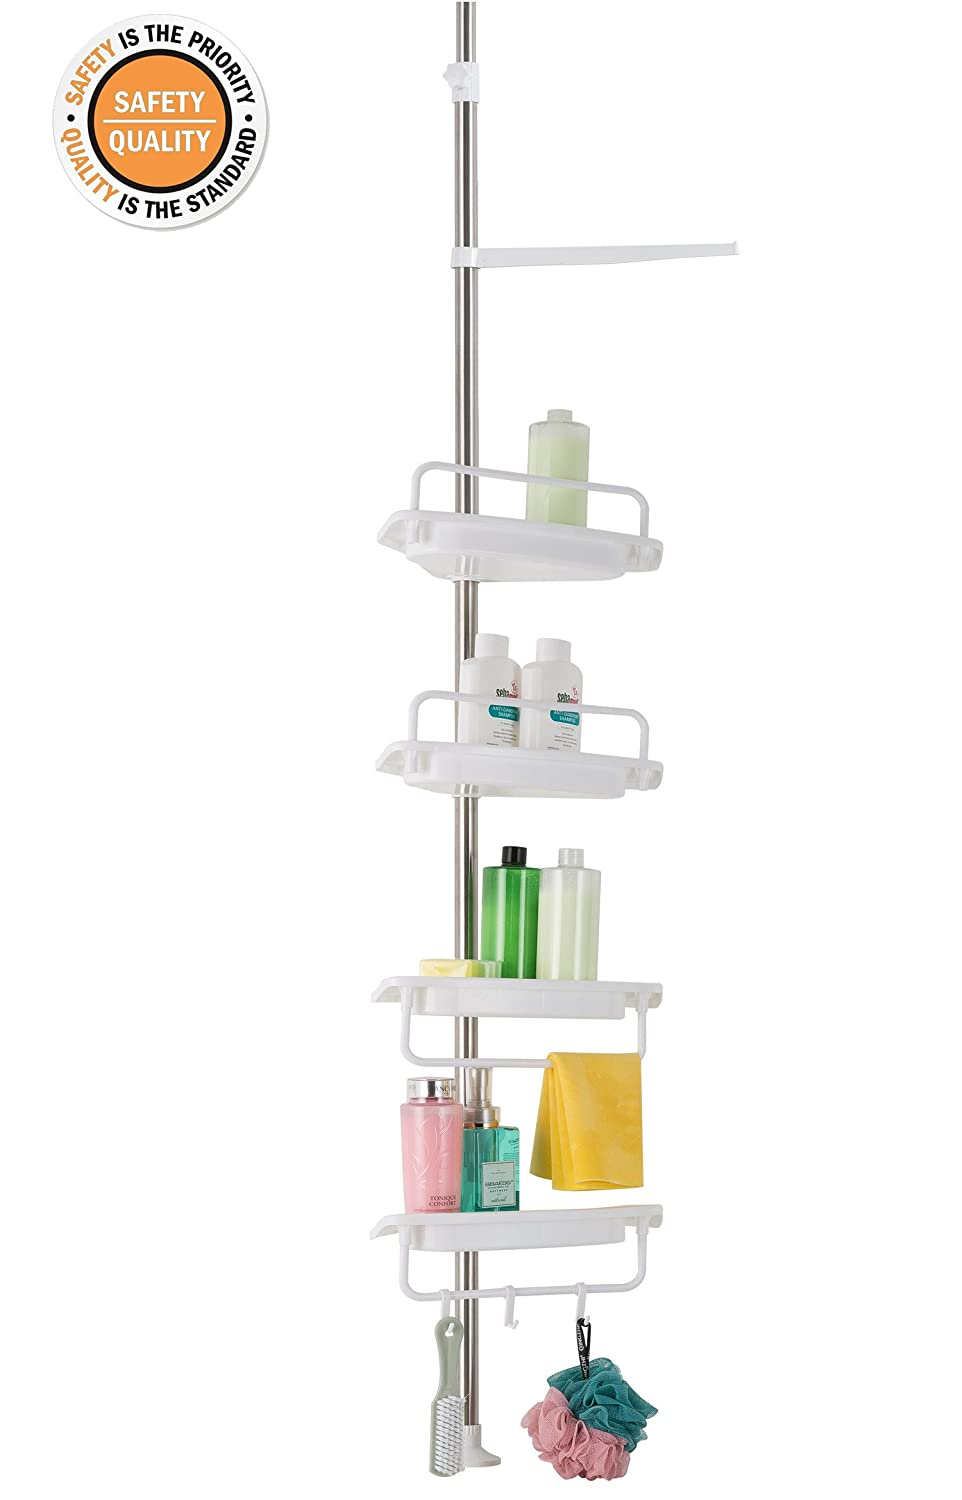 ALLZONE Constant Tension Corner Shower Caddy, Stainless Steel Pole, Rustproof, Strong and Sturdy, White